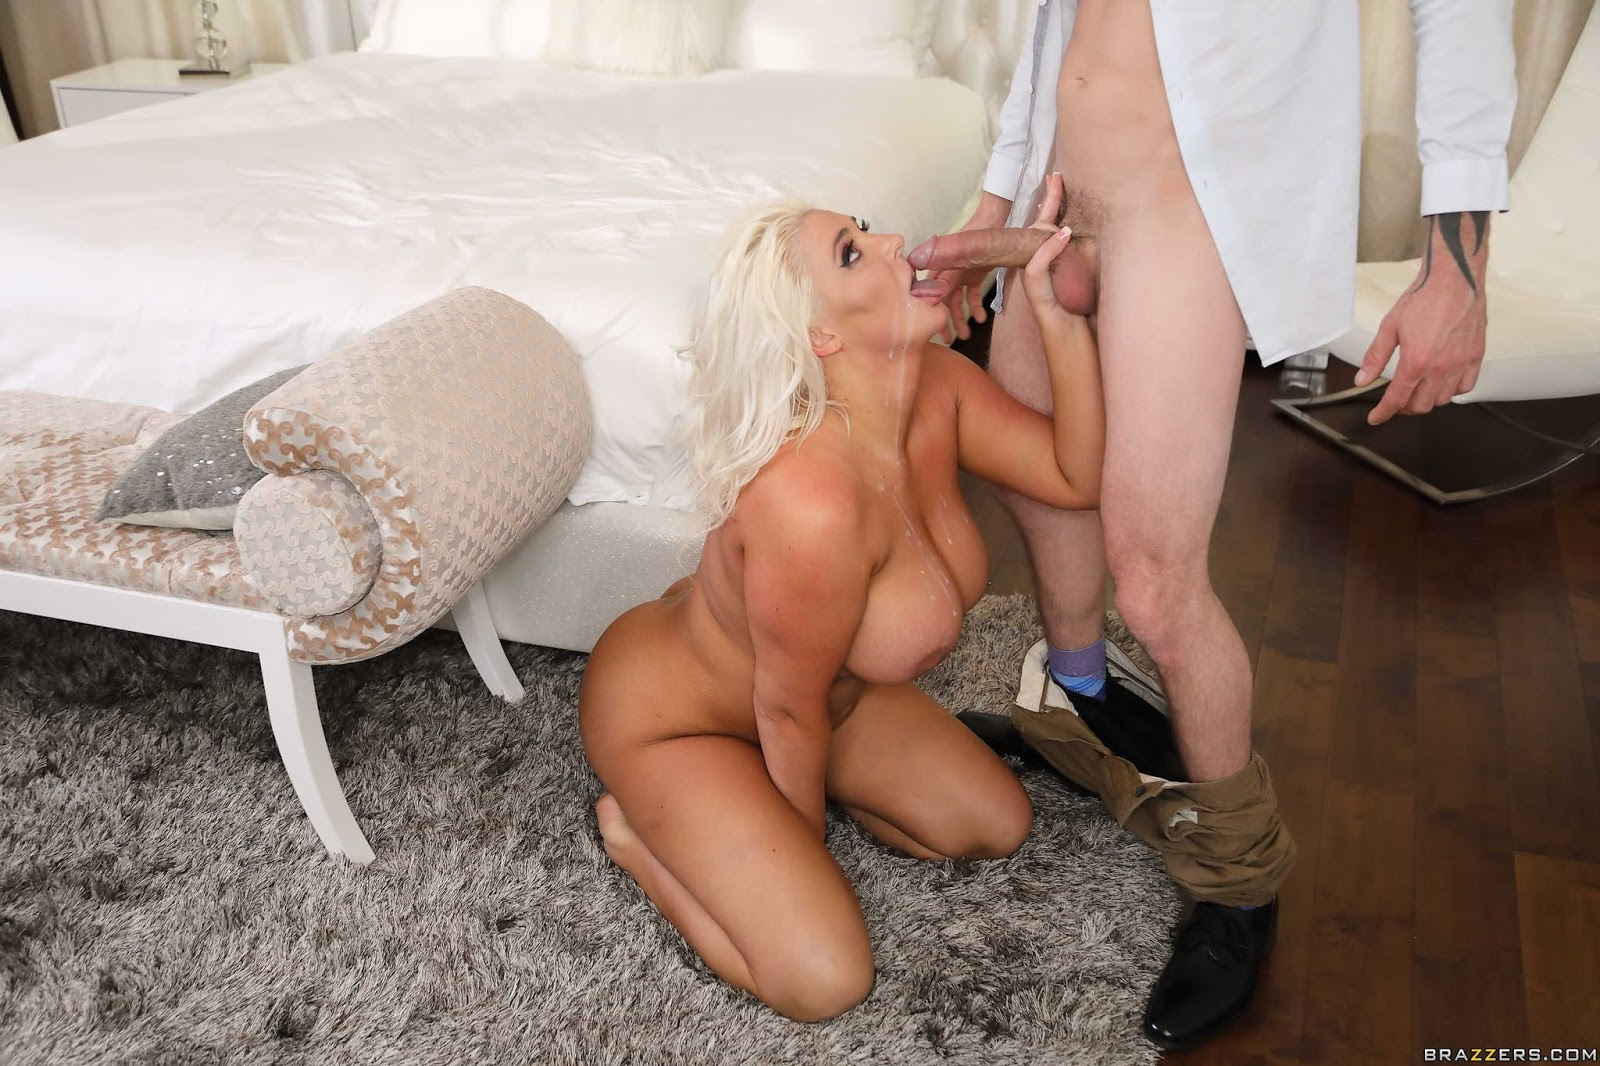 Shannon Seeley Female Biceps I'm Hard As Fuck Ms Show N Tell Sex And Sport